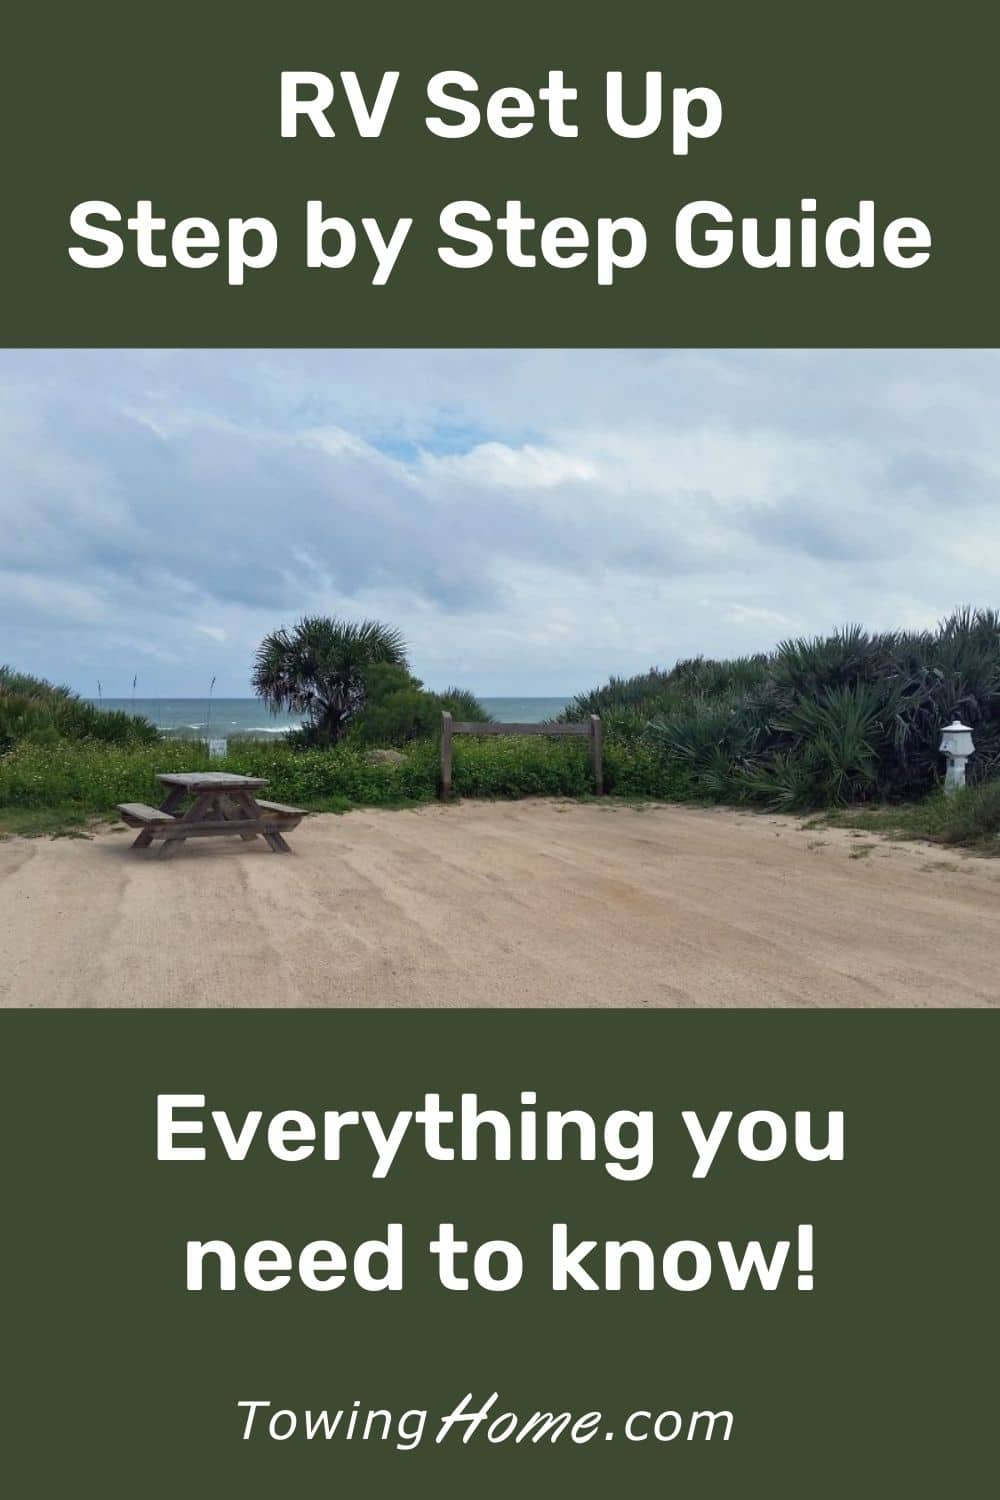 RV Set Up Guide Step by Step (And Everything You Need)